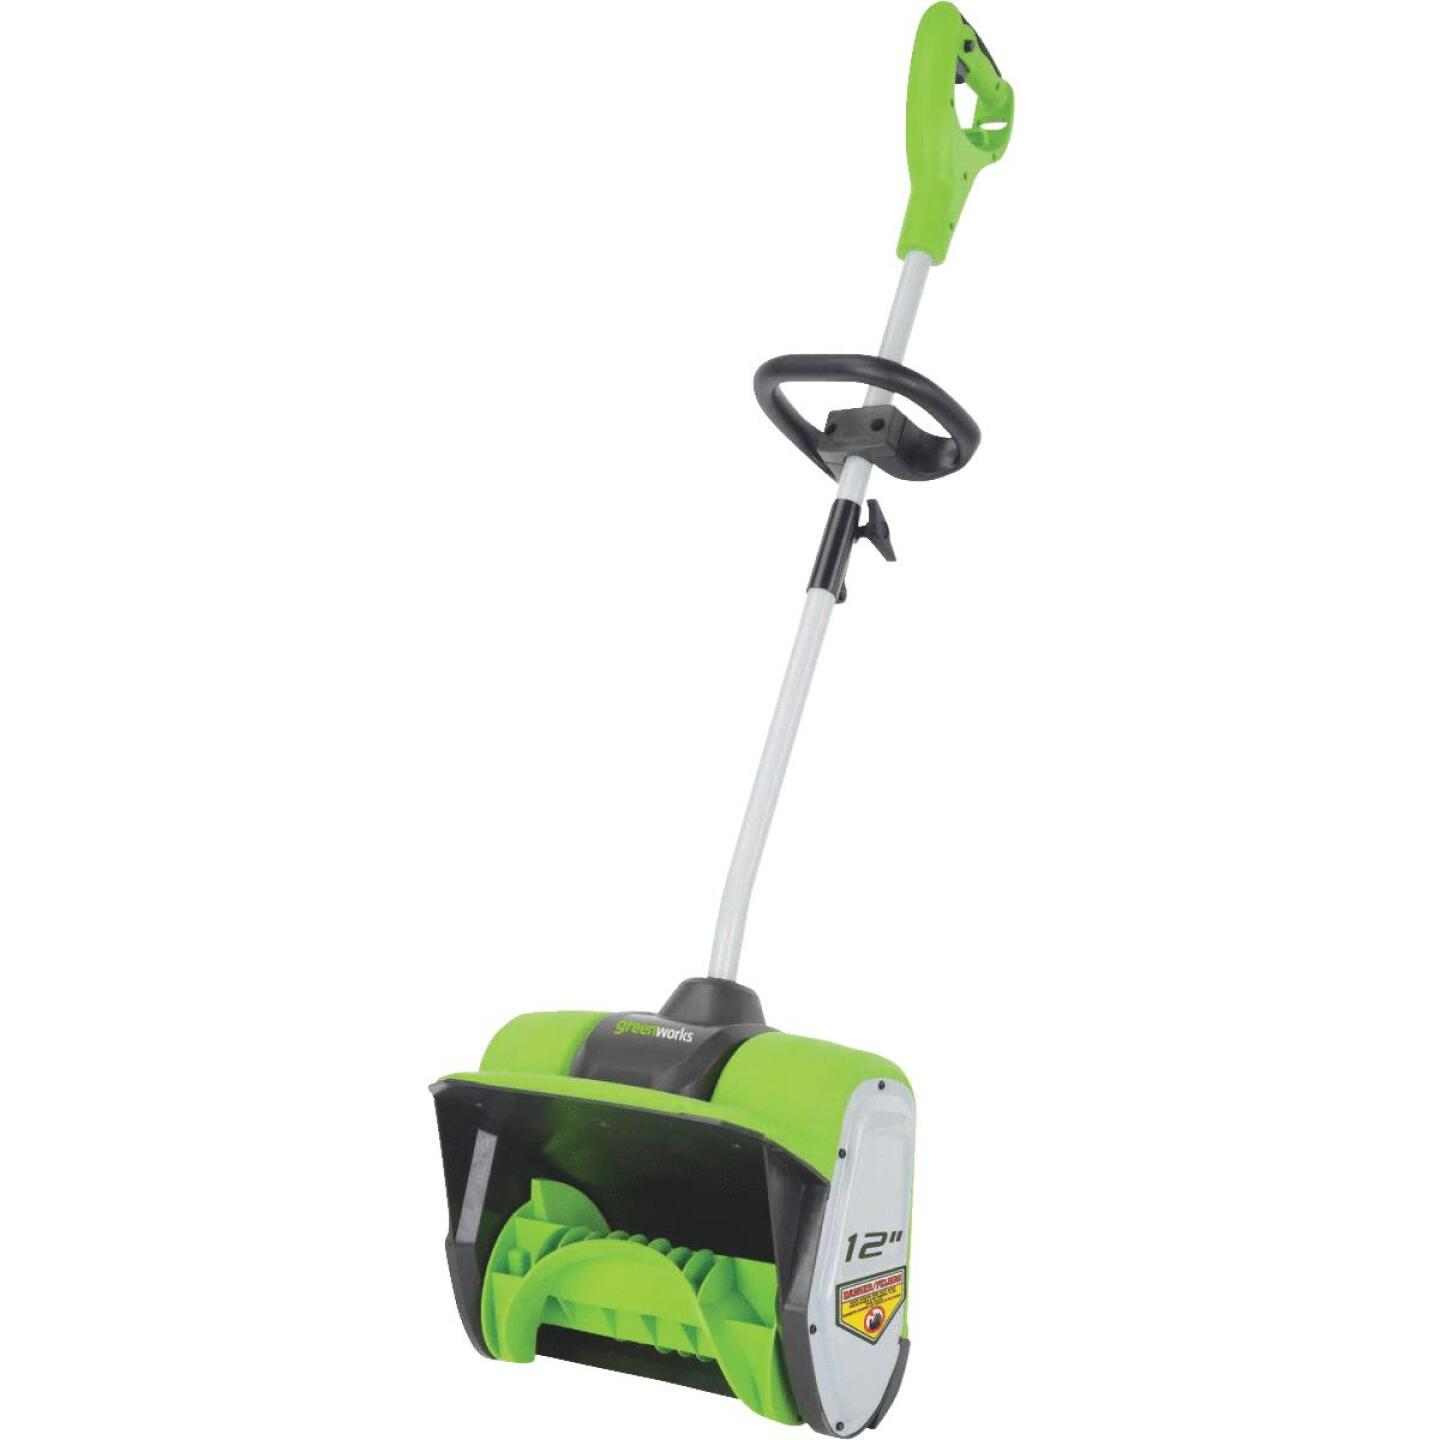 Greenworks 12 In. 8A Electric Snow Blower Shovel Image 1